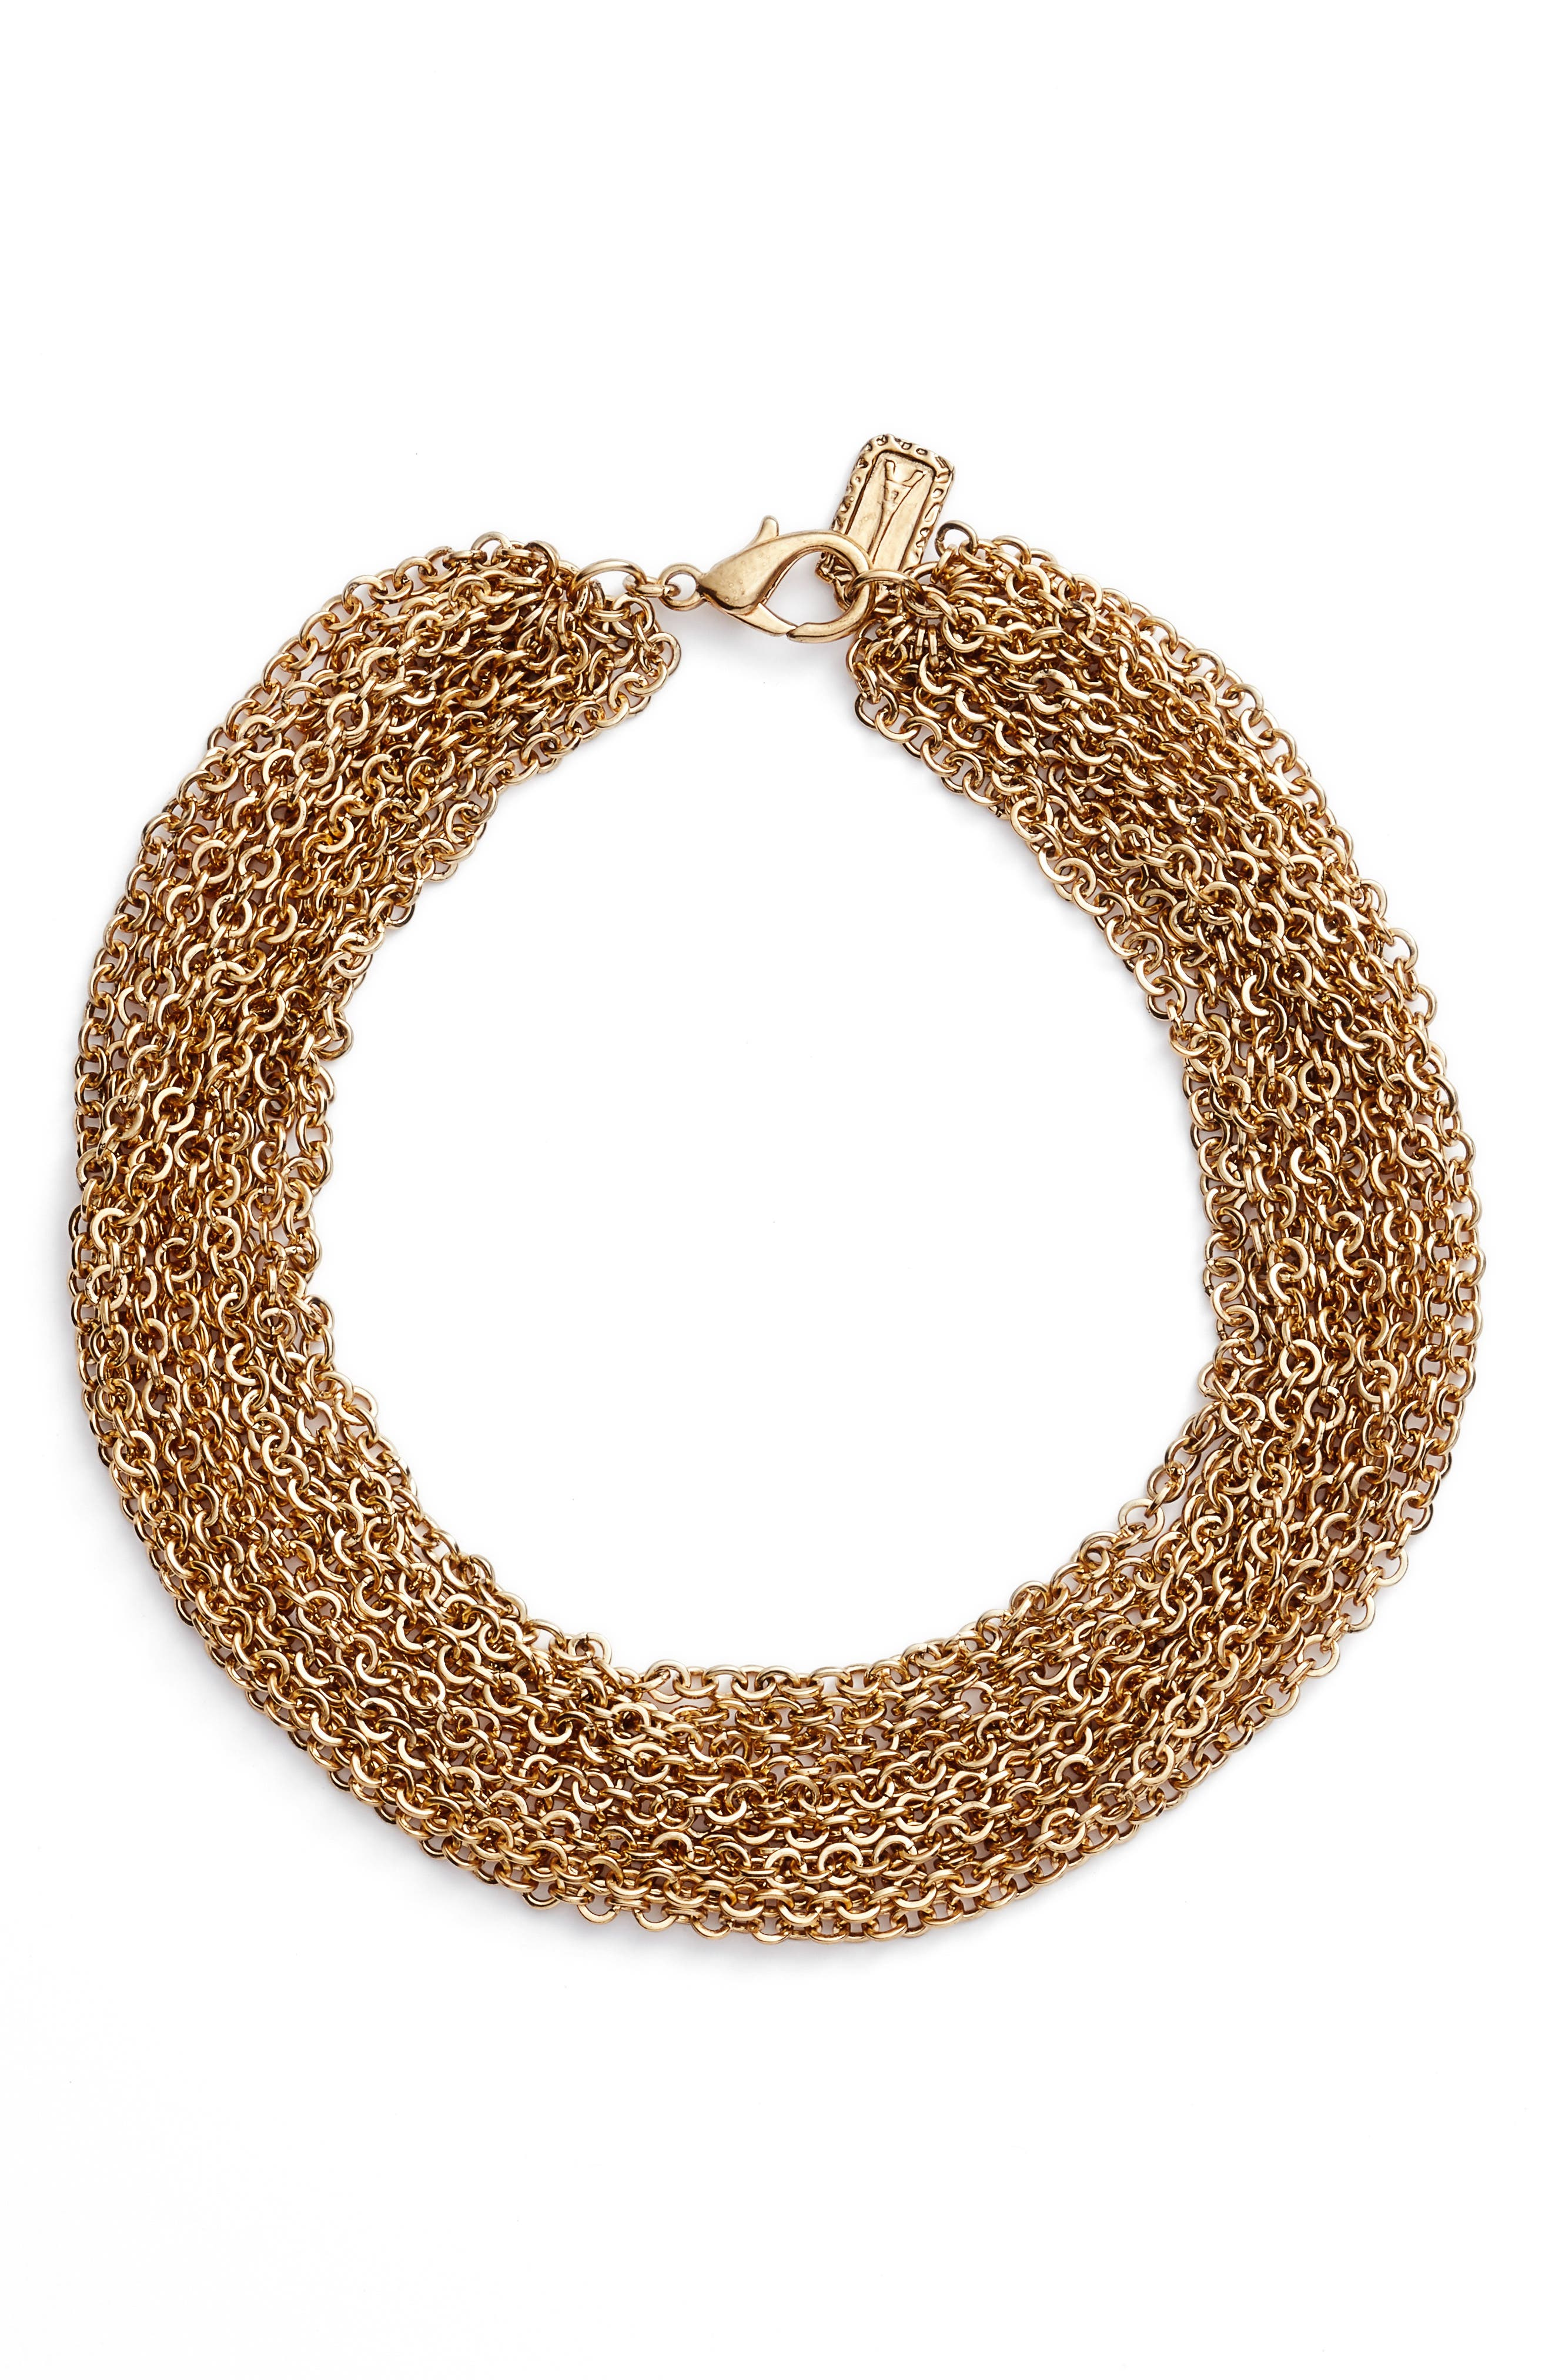 Adeline Collar Necklace,                             Main thumbnail 1, color,                             Gold